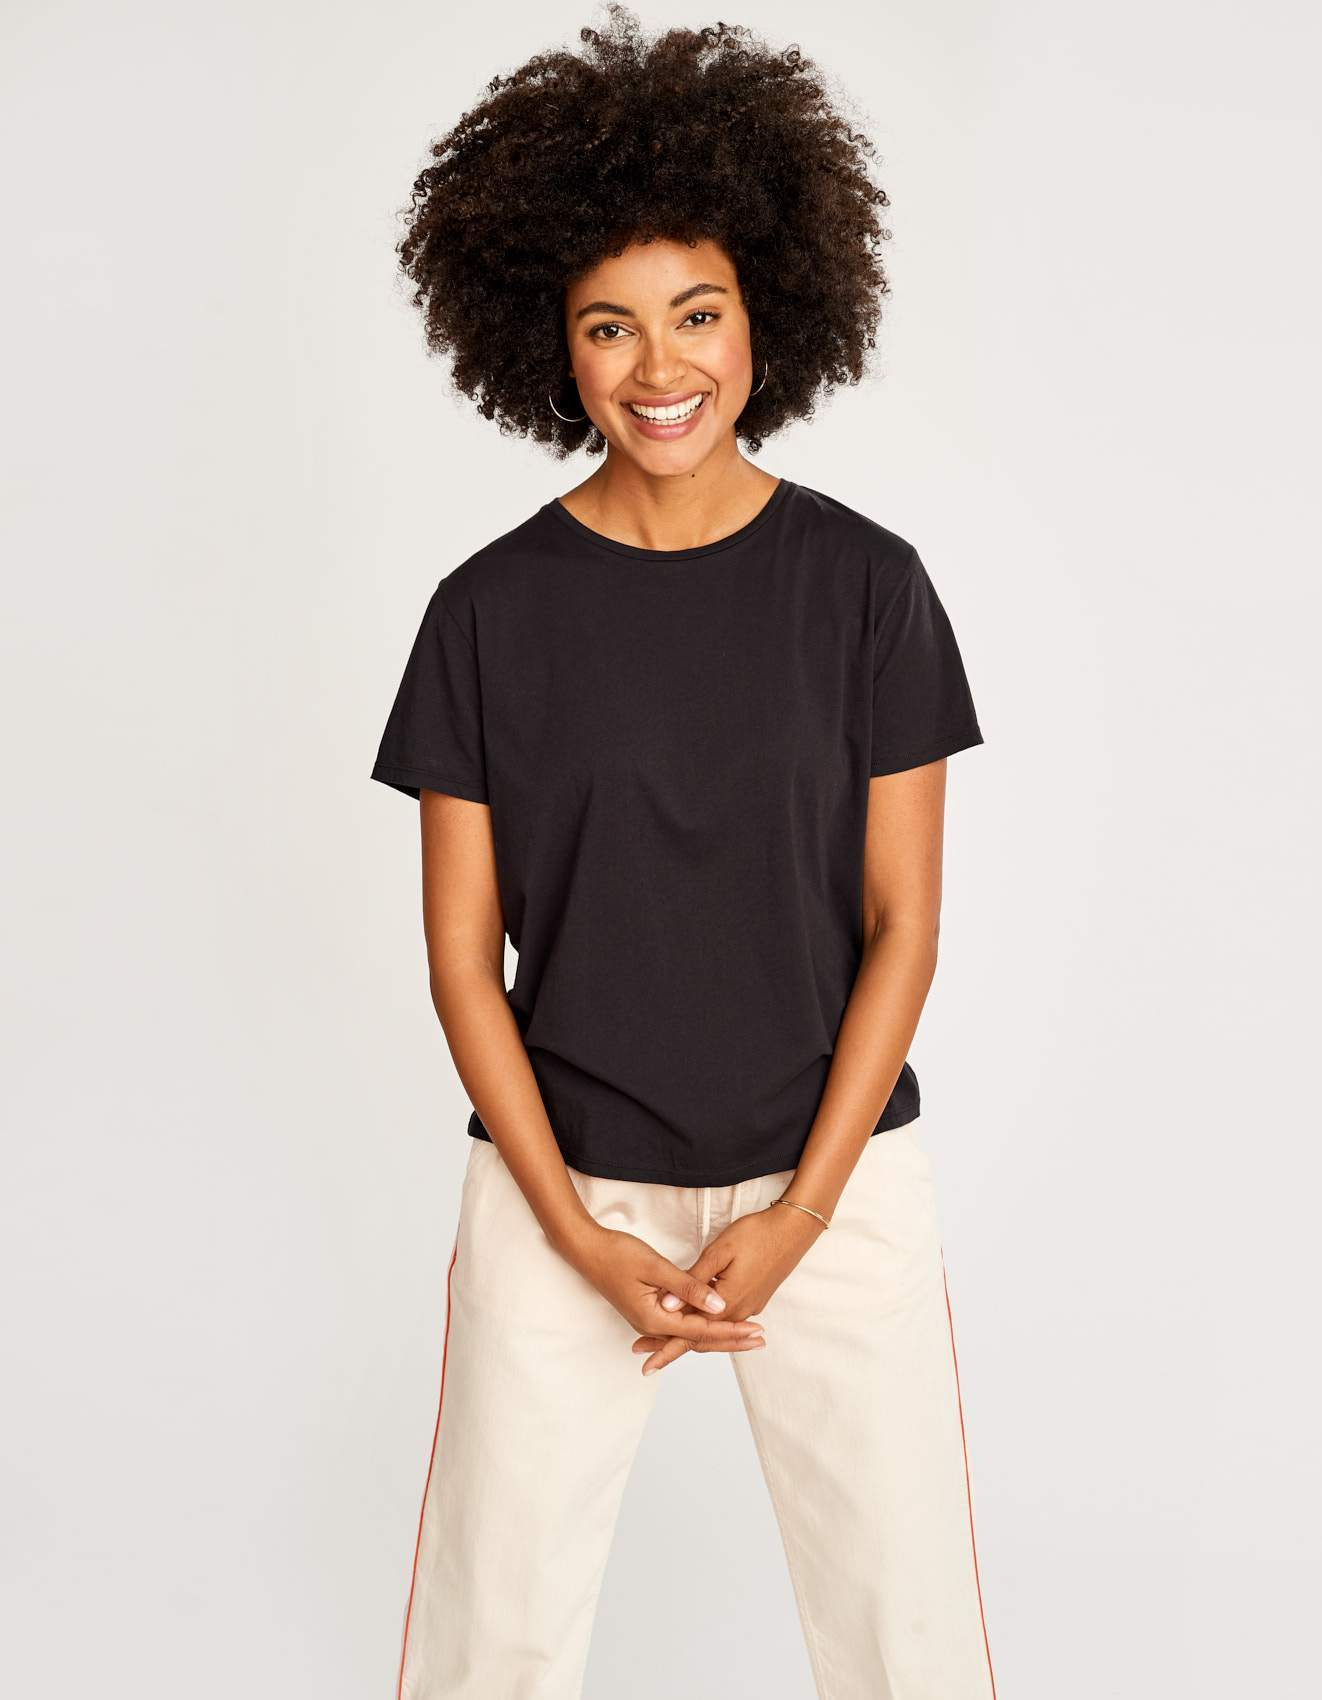 Bellerose short-sleeves black t-shirt for women